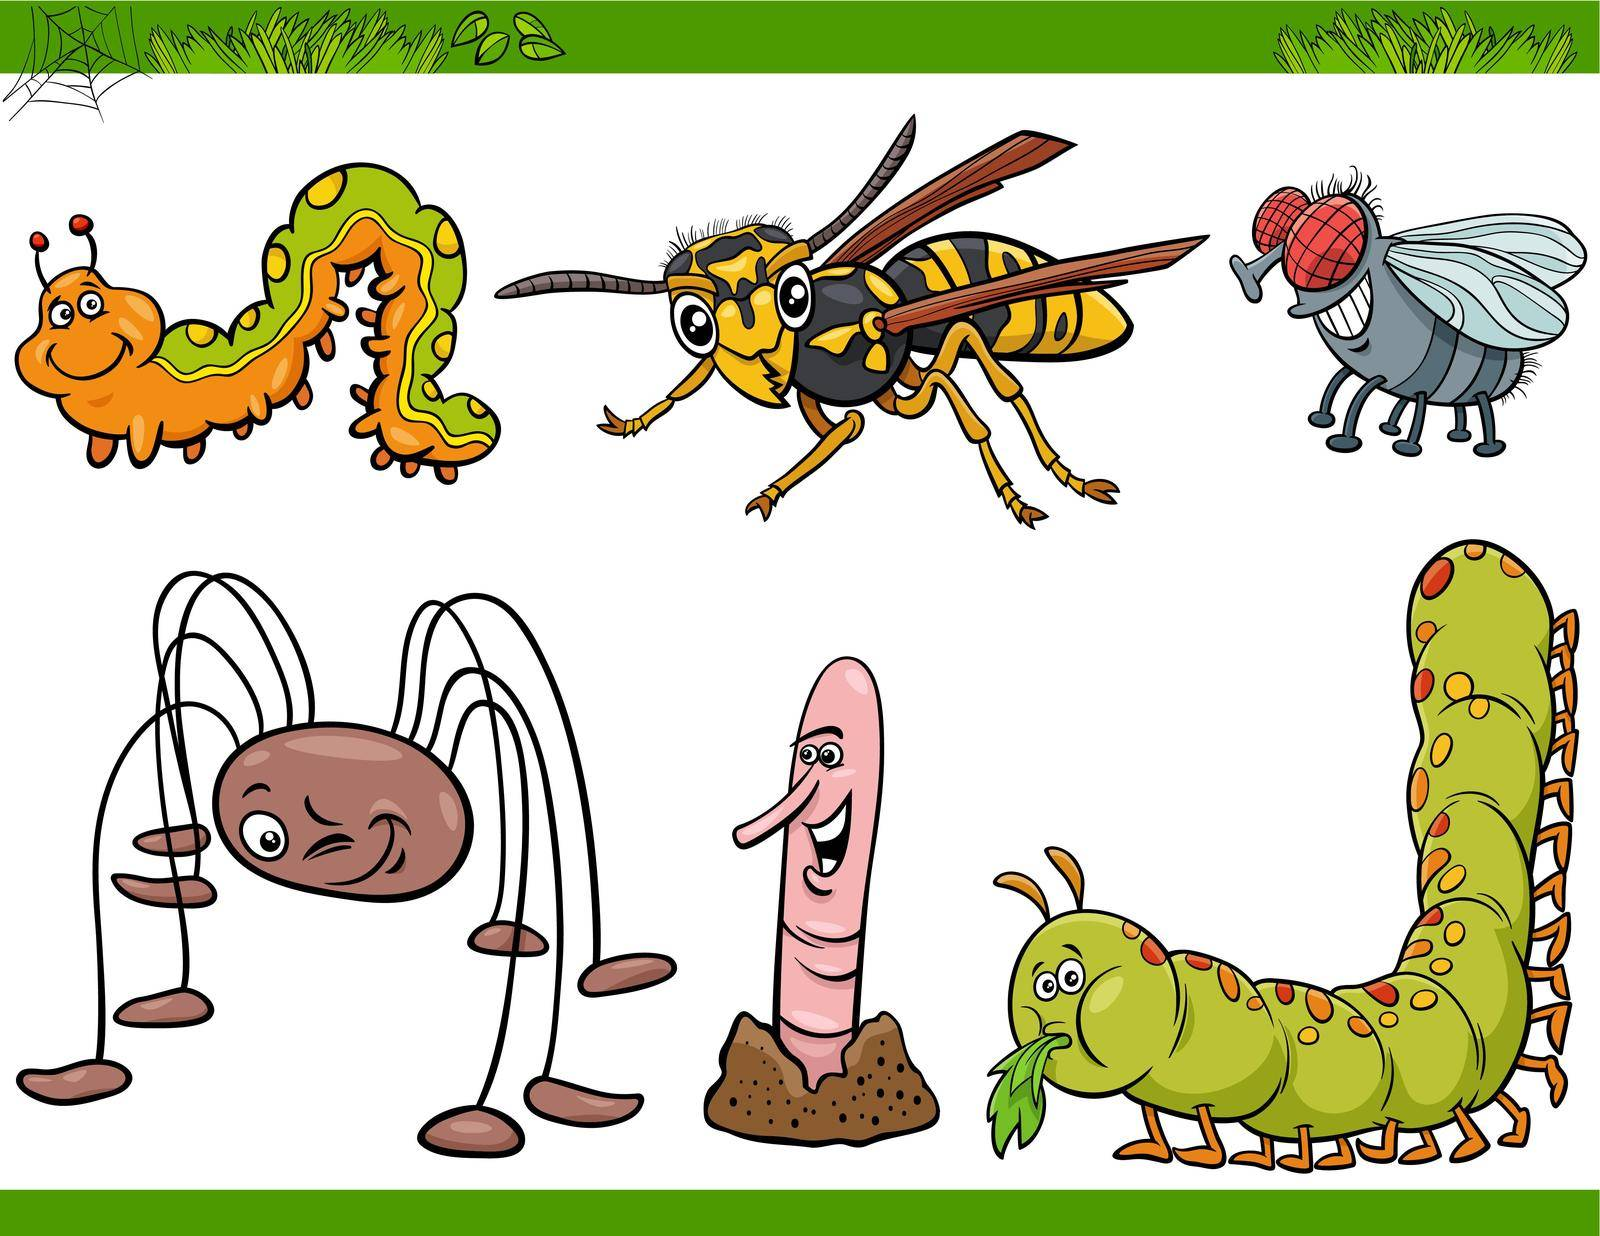 Cartoon humorous illustration of comic insects animal characters set